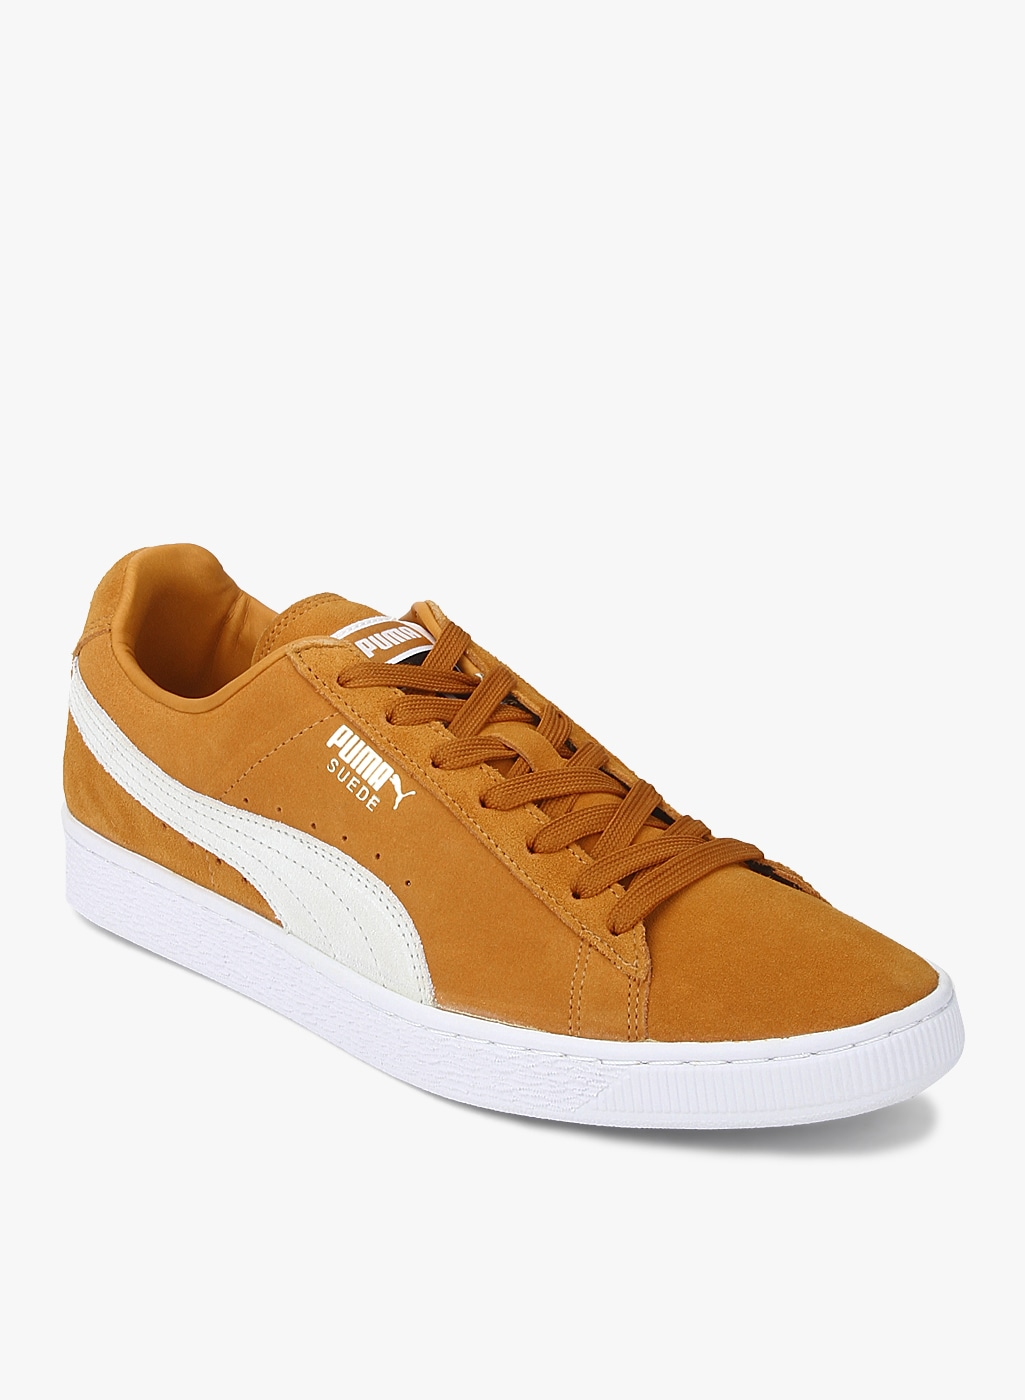 Puma Yellow Casual Shoes - Buy Puma Yellow Casual Shoes online in India 5a3b6f304